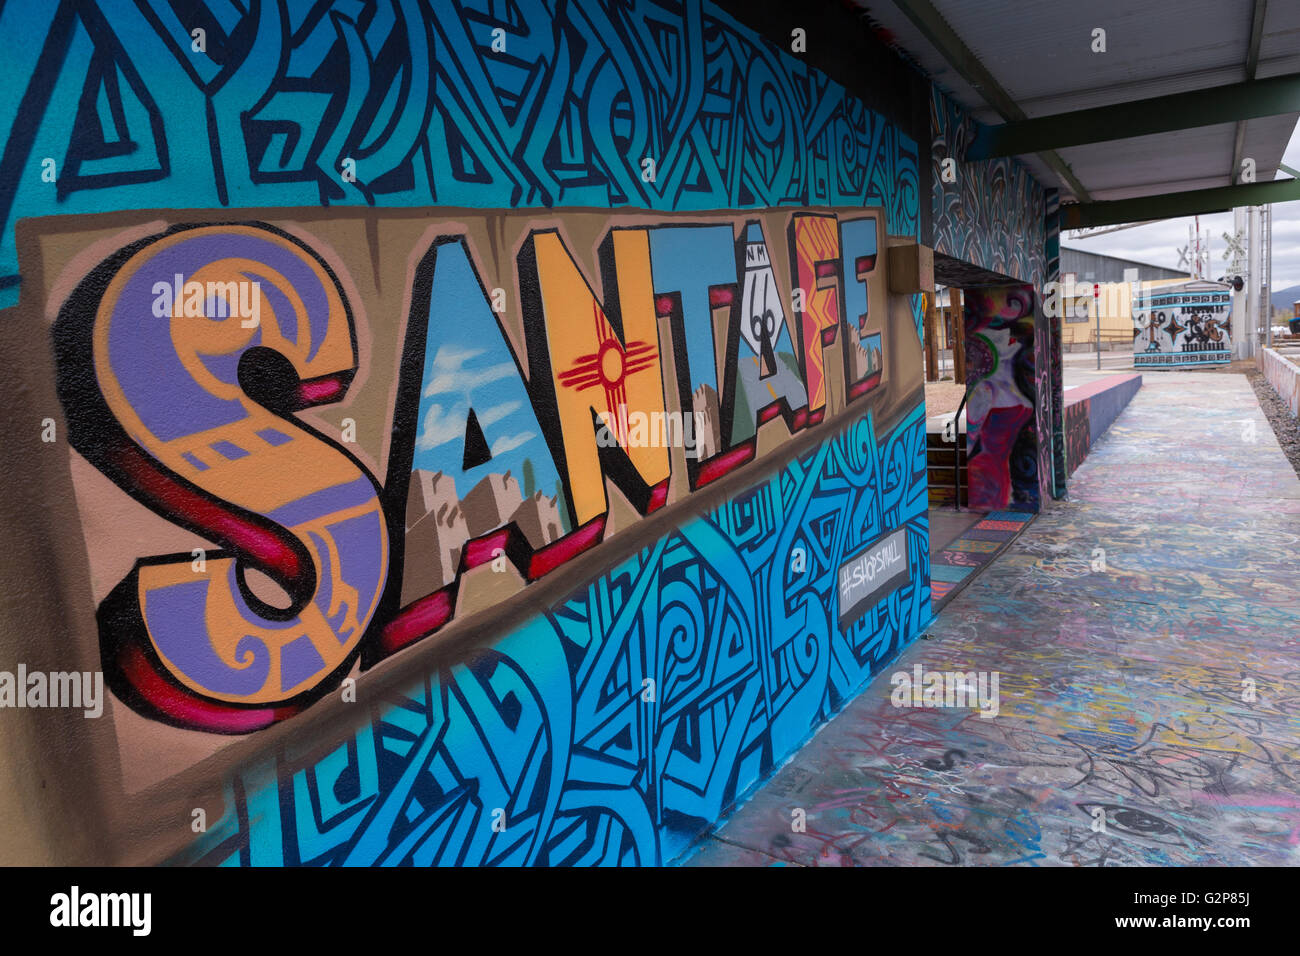 A Santa Fe Mural Painted Along The Wall Of Warehouse. Mubarak Banners. Staff Signs. Kubang Kerian Signs Of Stroke. Healed Signs. Cycle Route Signs Of Stroke. Small Bike Stickers. Heatstroke Prevention Signs. Triangle Signs Of Stroke